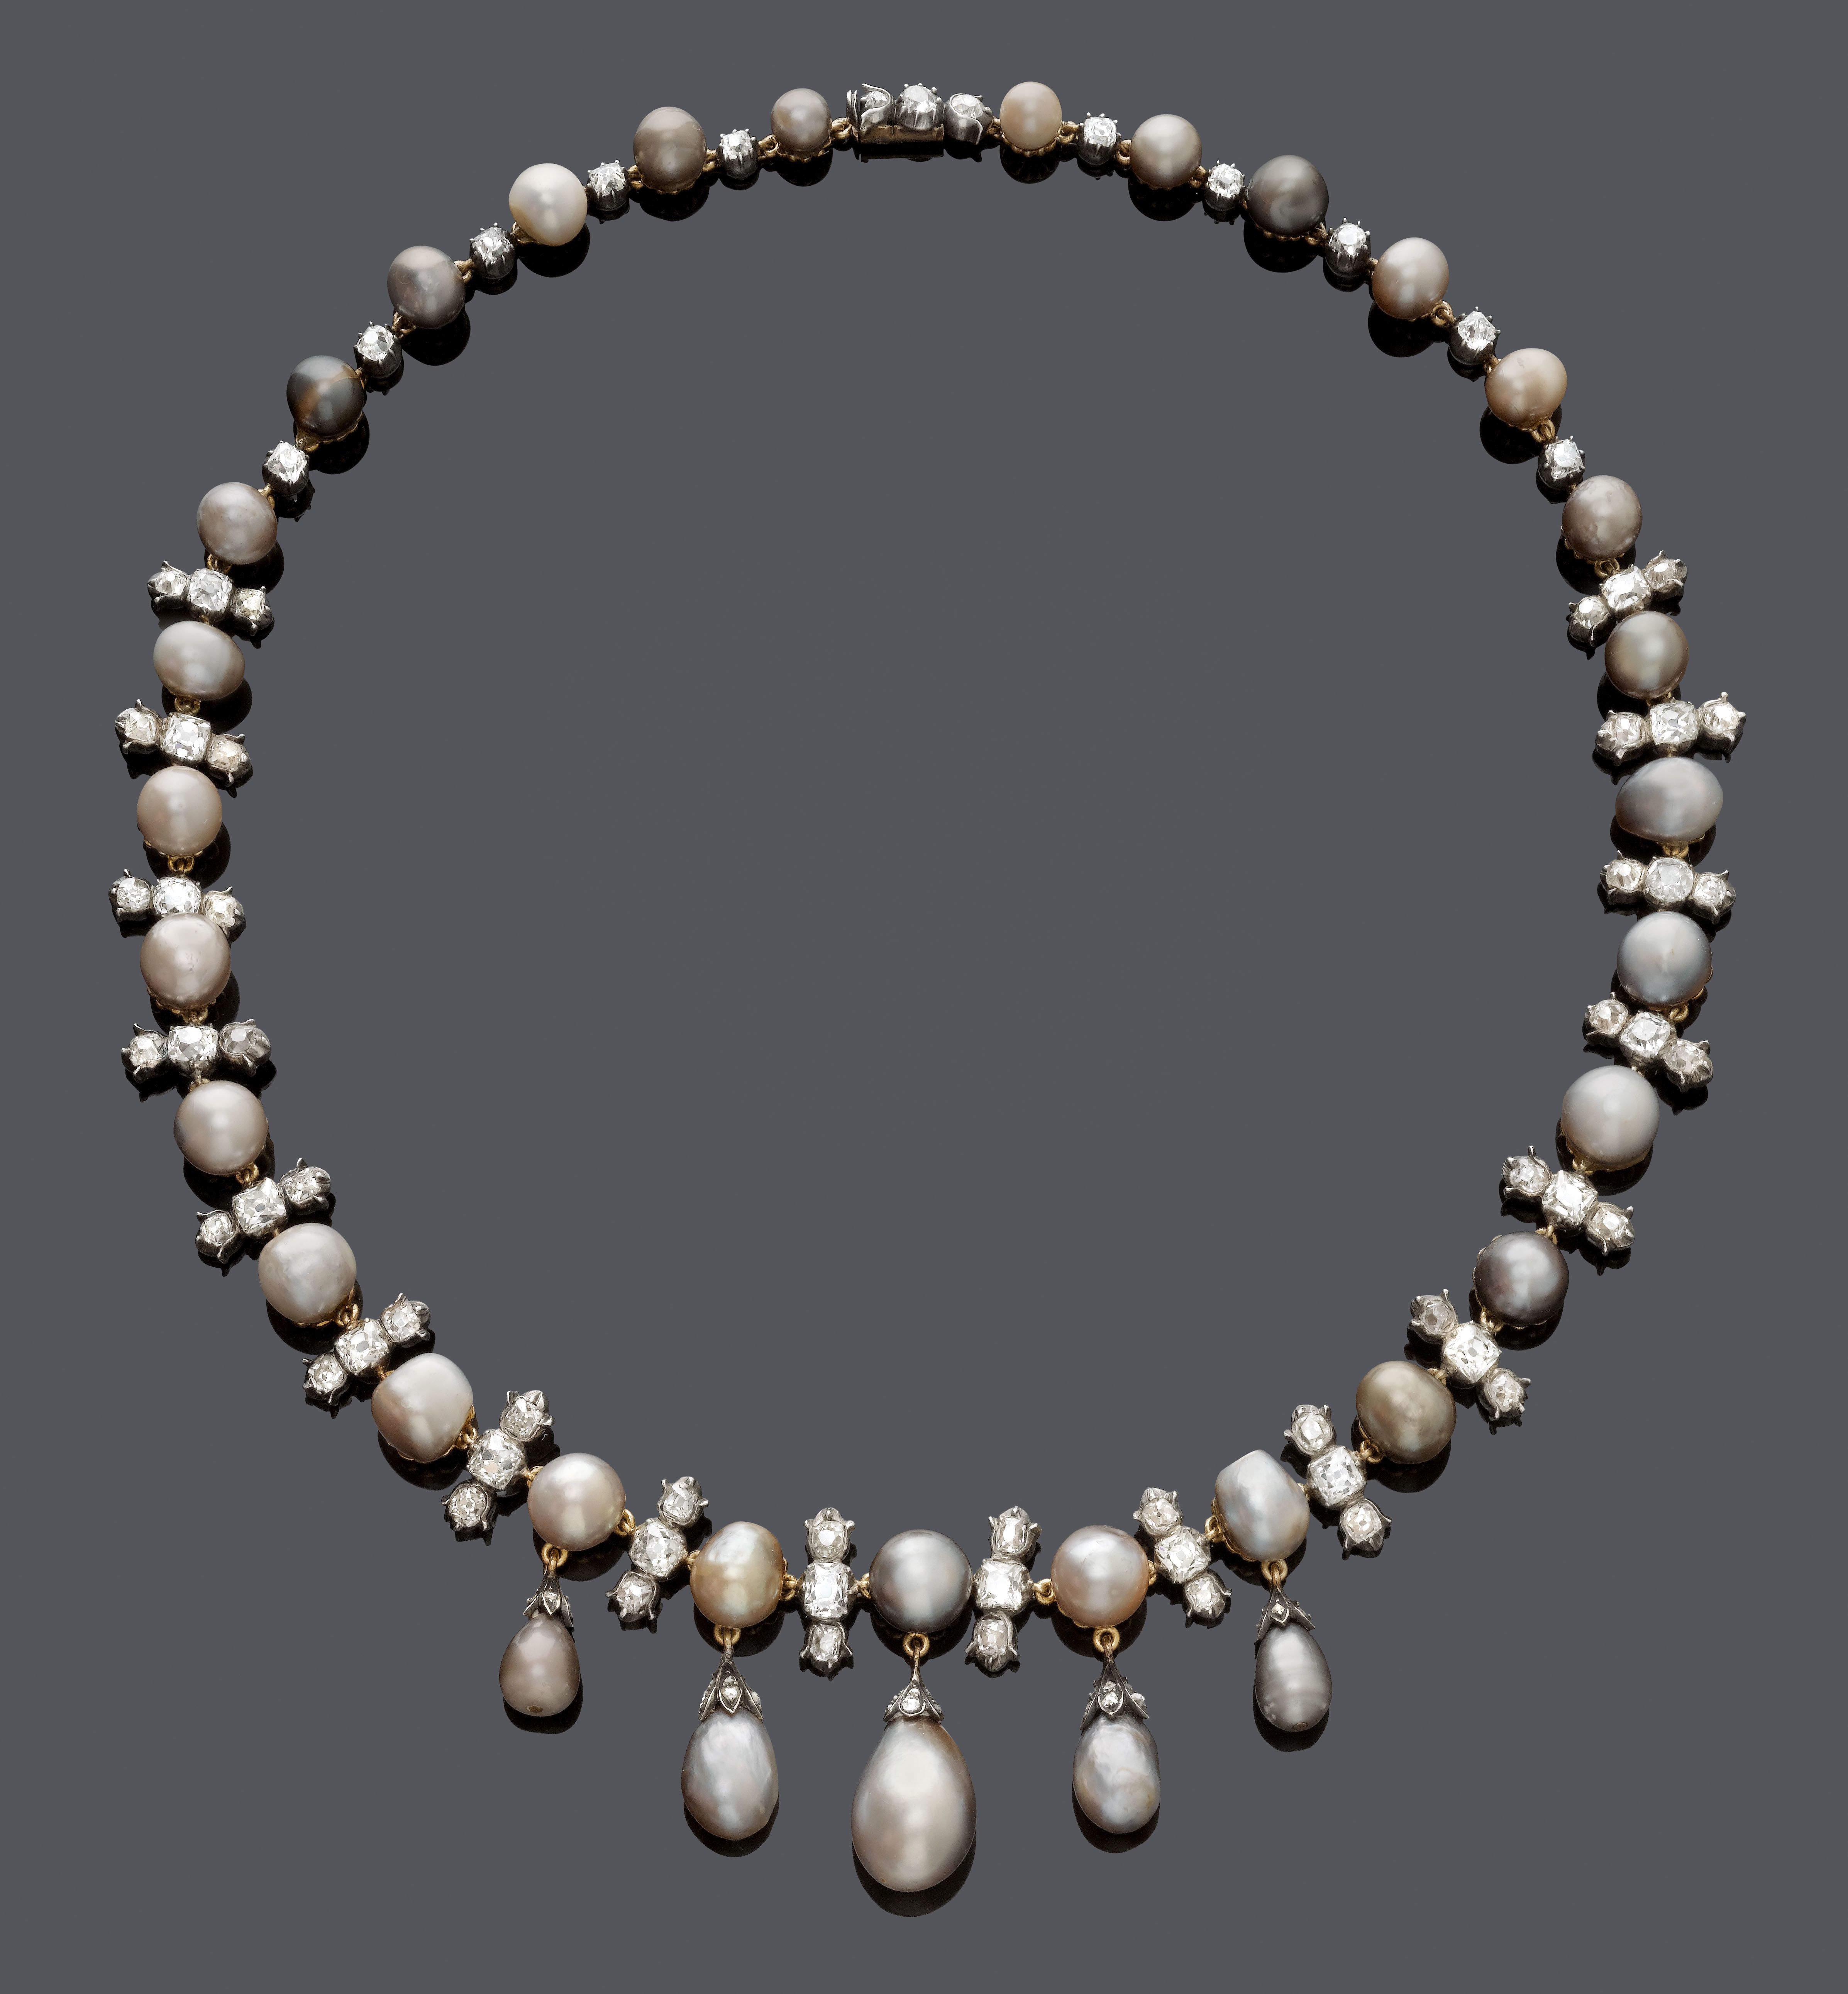 Silver pearl marisol white lace 1 - Natural Pearl And Diamond Necklace About 1900